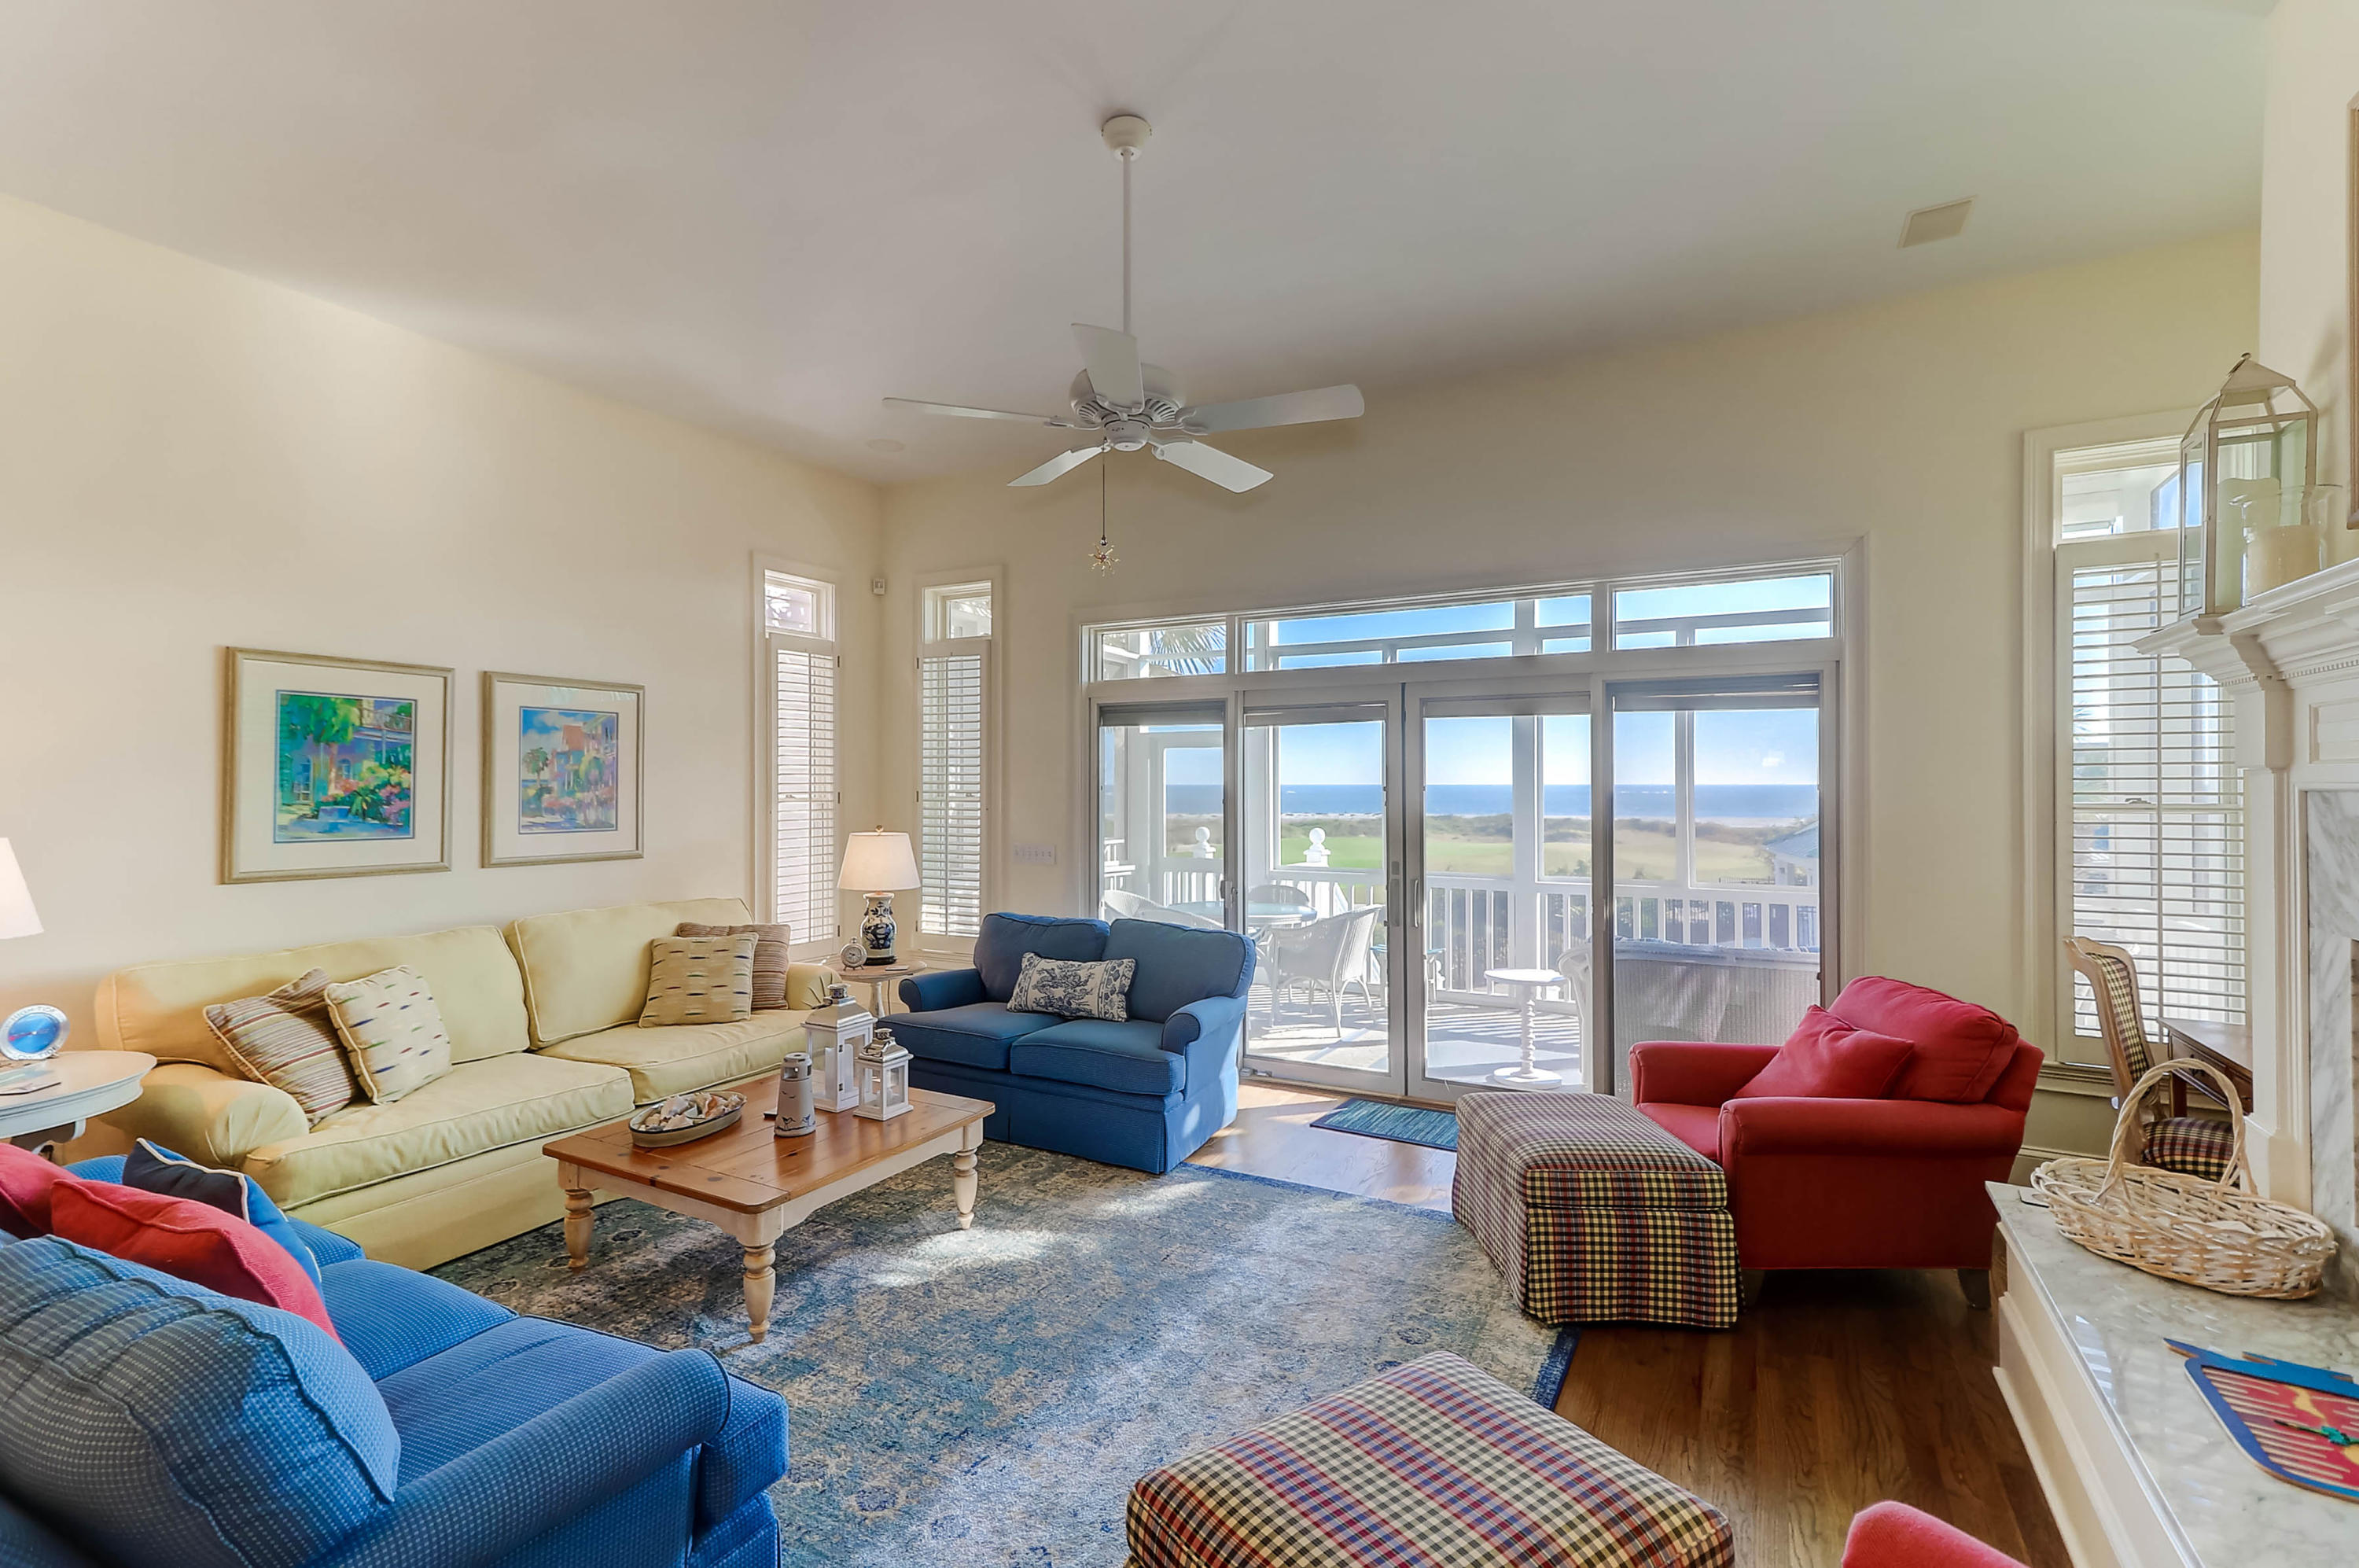 Wild Dunes Homes For Sale - 36 Ocean Point, Isle of Palms, SC - 34